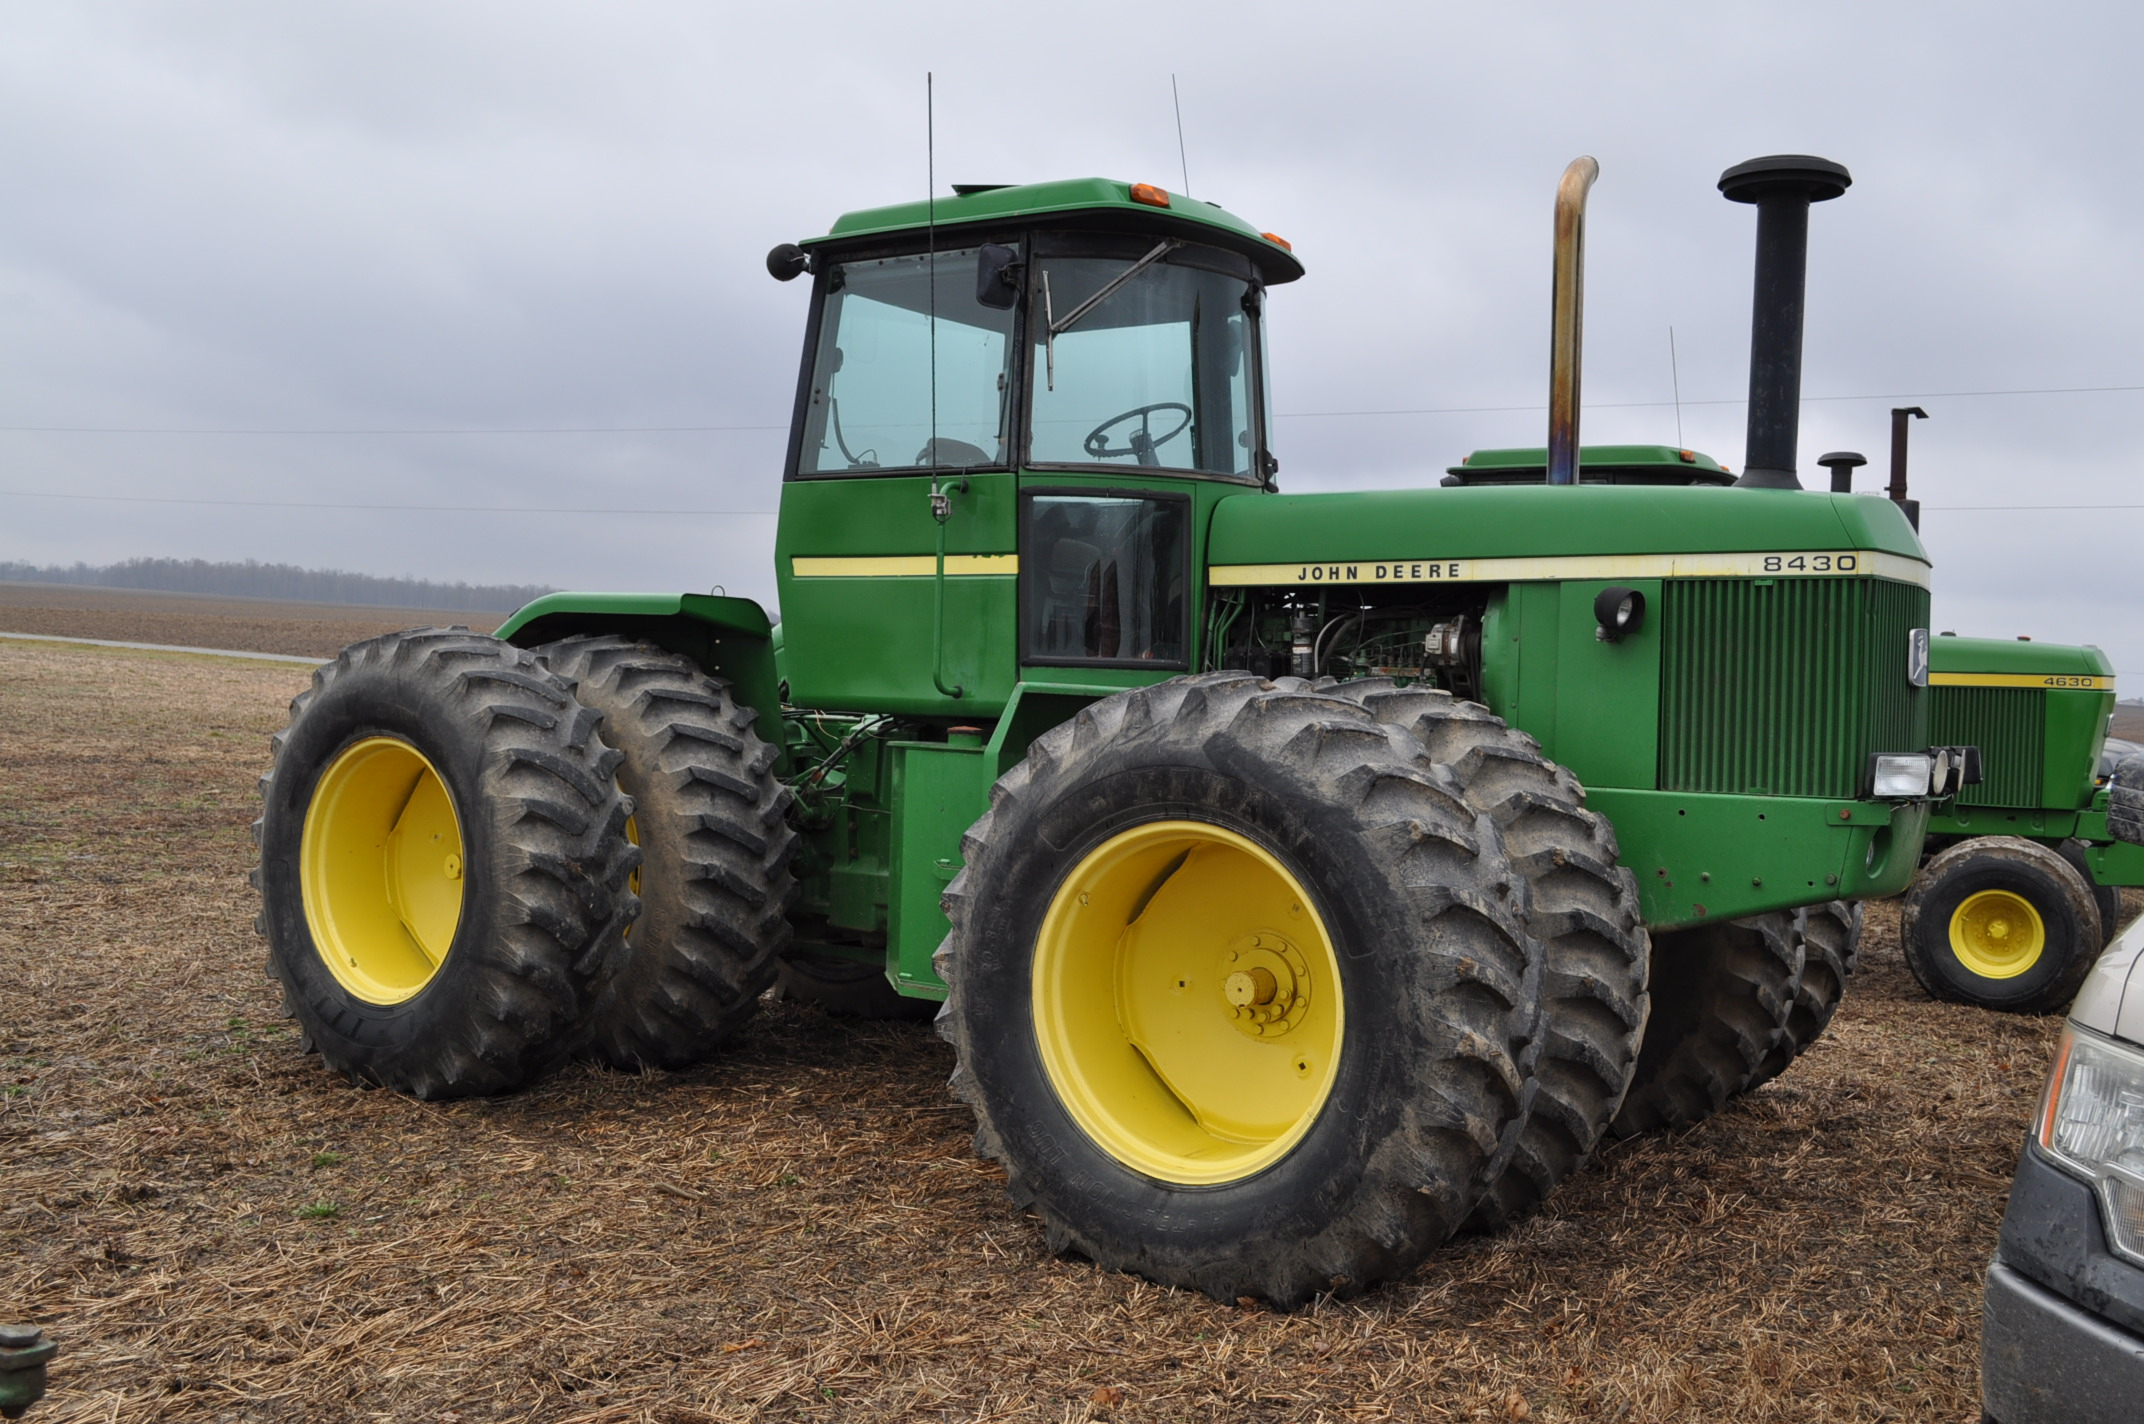 John Deere 8430 tractor, 4WD, diesel, 20.8-34 duals, CHA, Quad range, 3 hyd remotes, 1000 pto, 3 pt, - Image 4 of 19